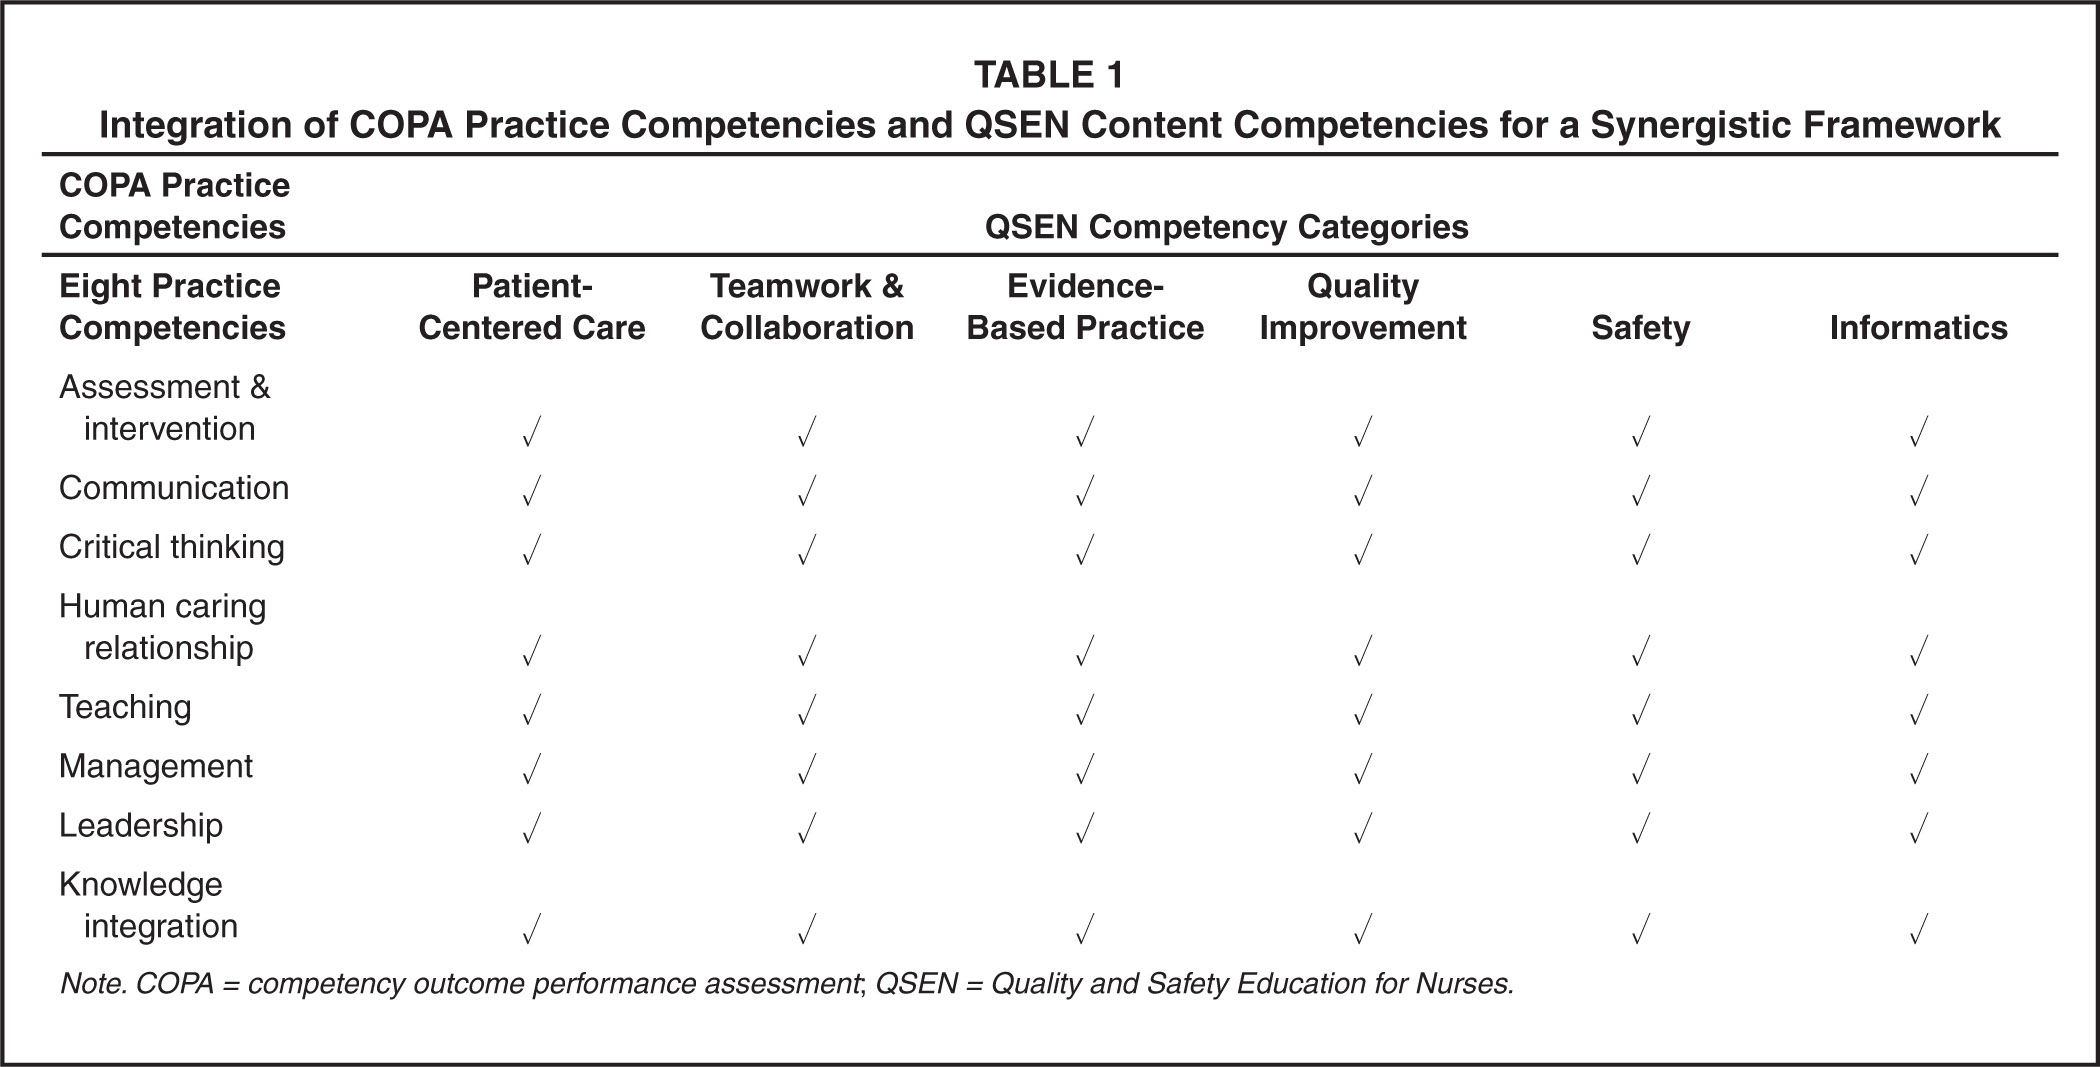 Integration of COPA Practice Competencies and QSEN Content Competencies for a Synergistic Framework